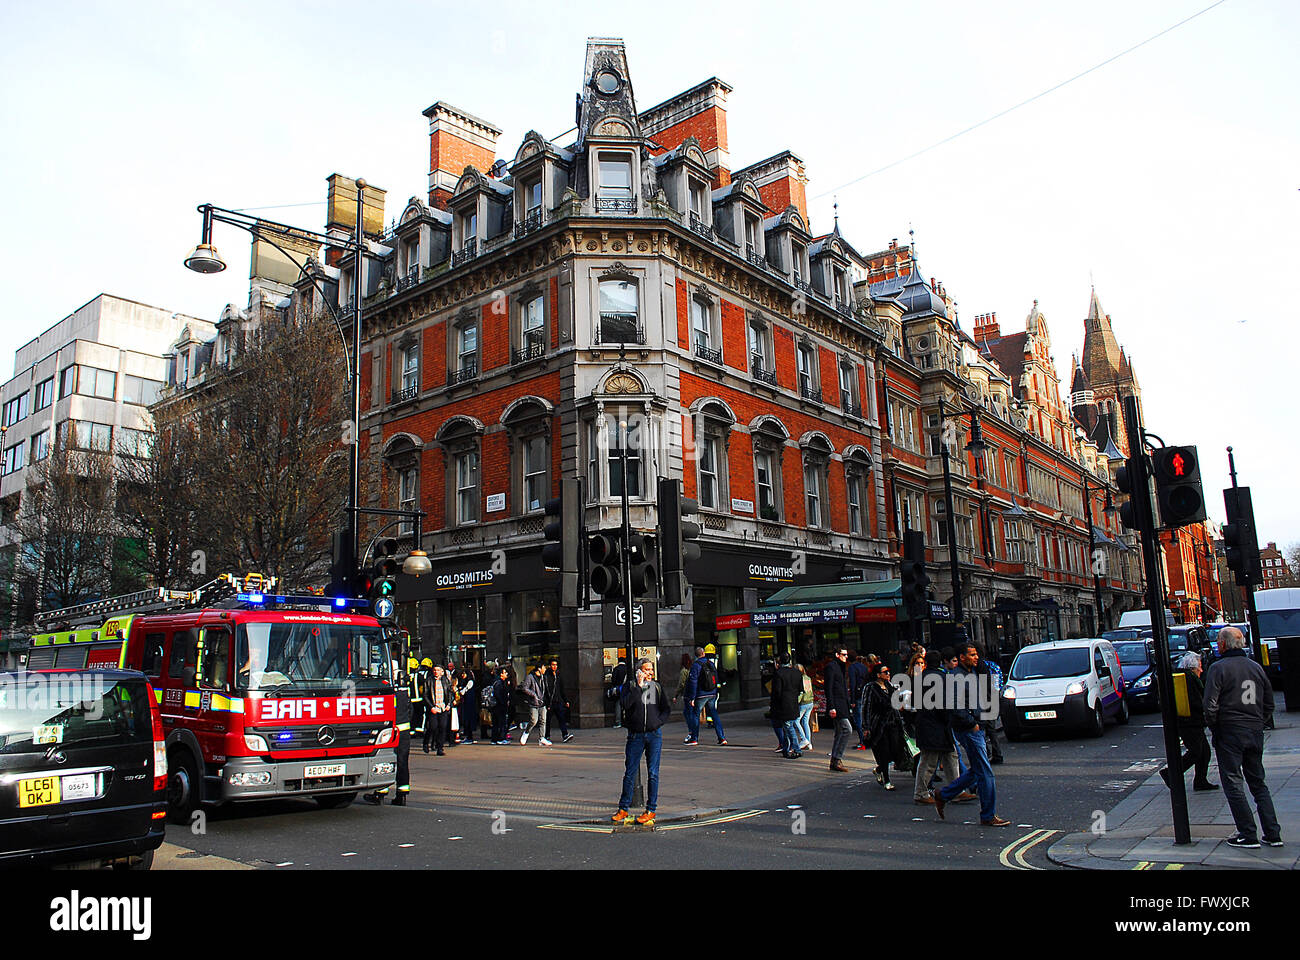 London Fire Brigade in response to health and safety call dangling metal on a building rooftop 01 04 2016 in London - Stock Image